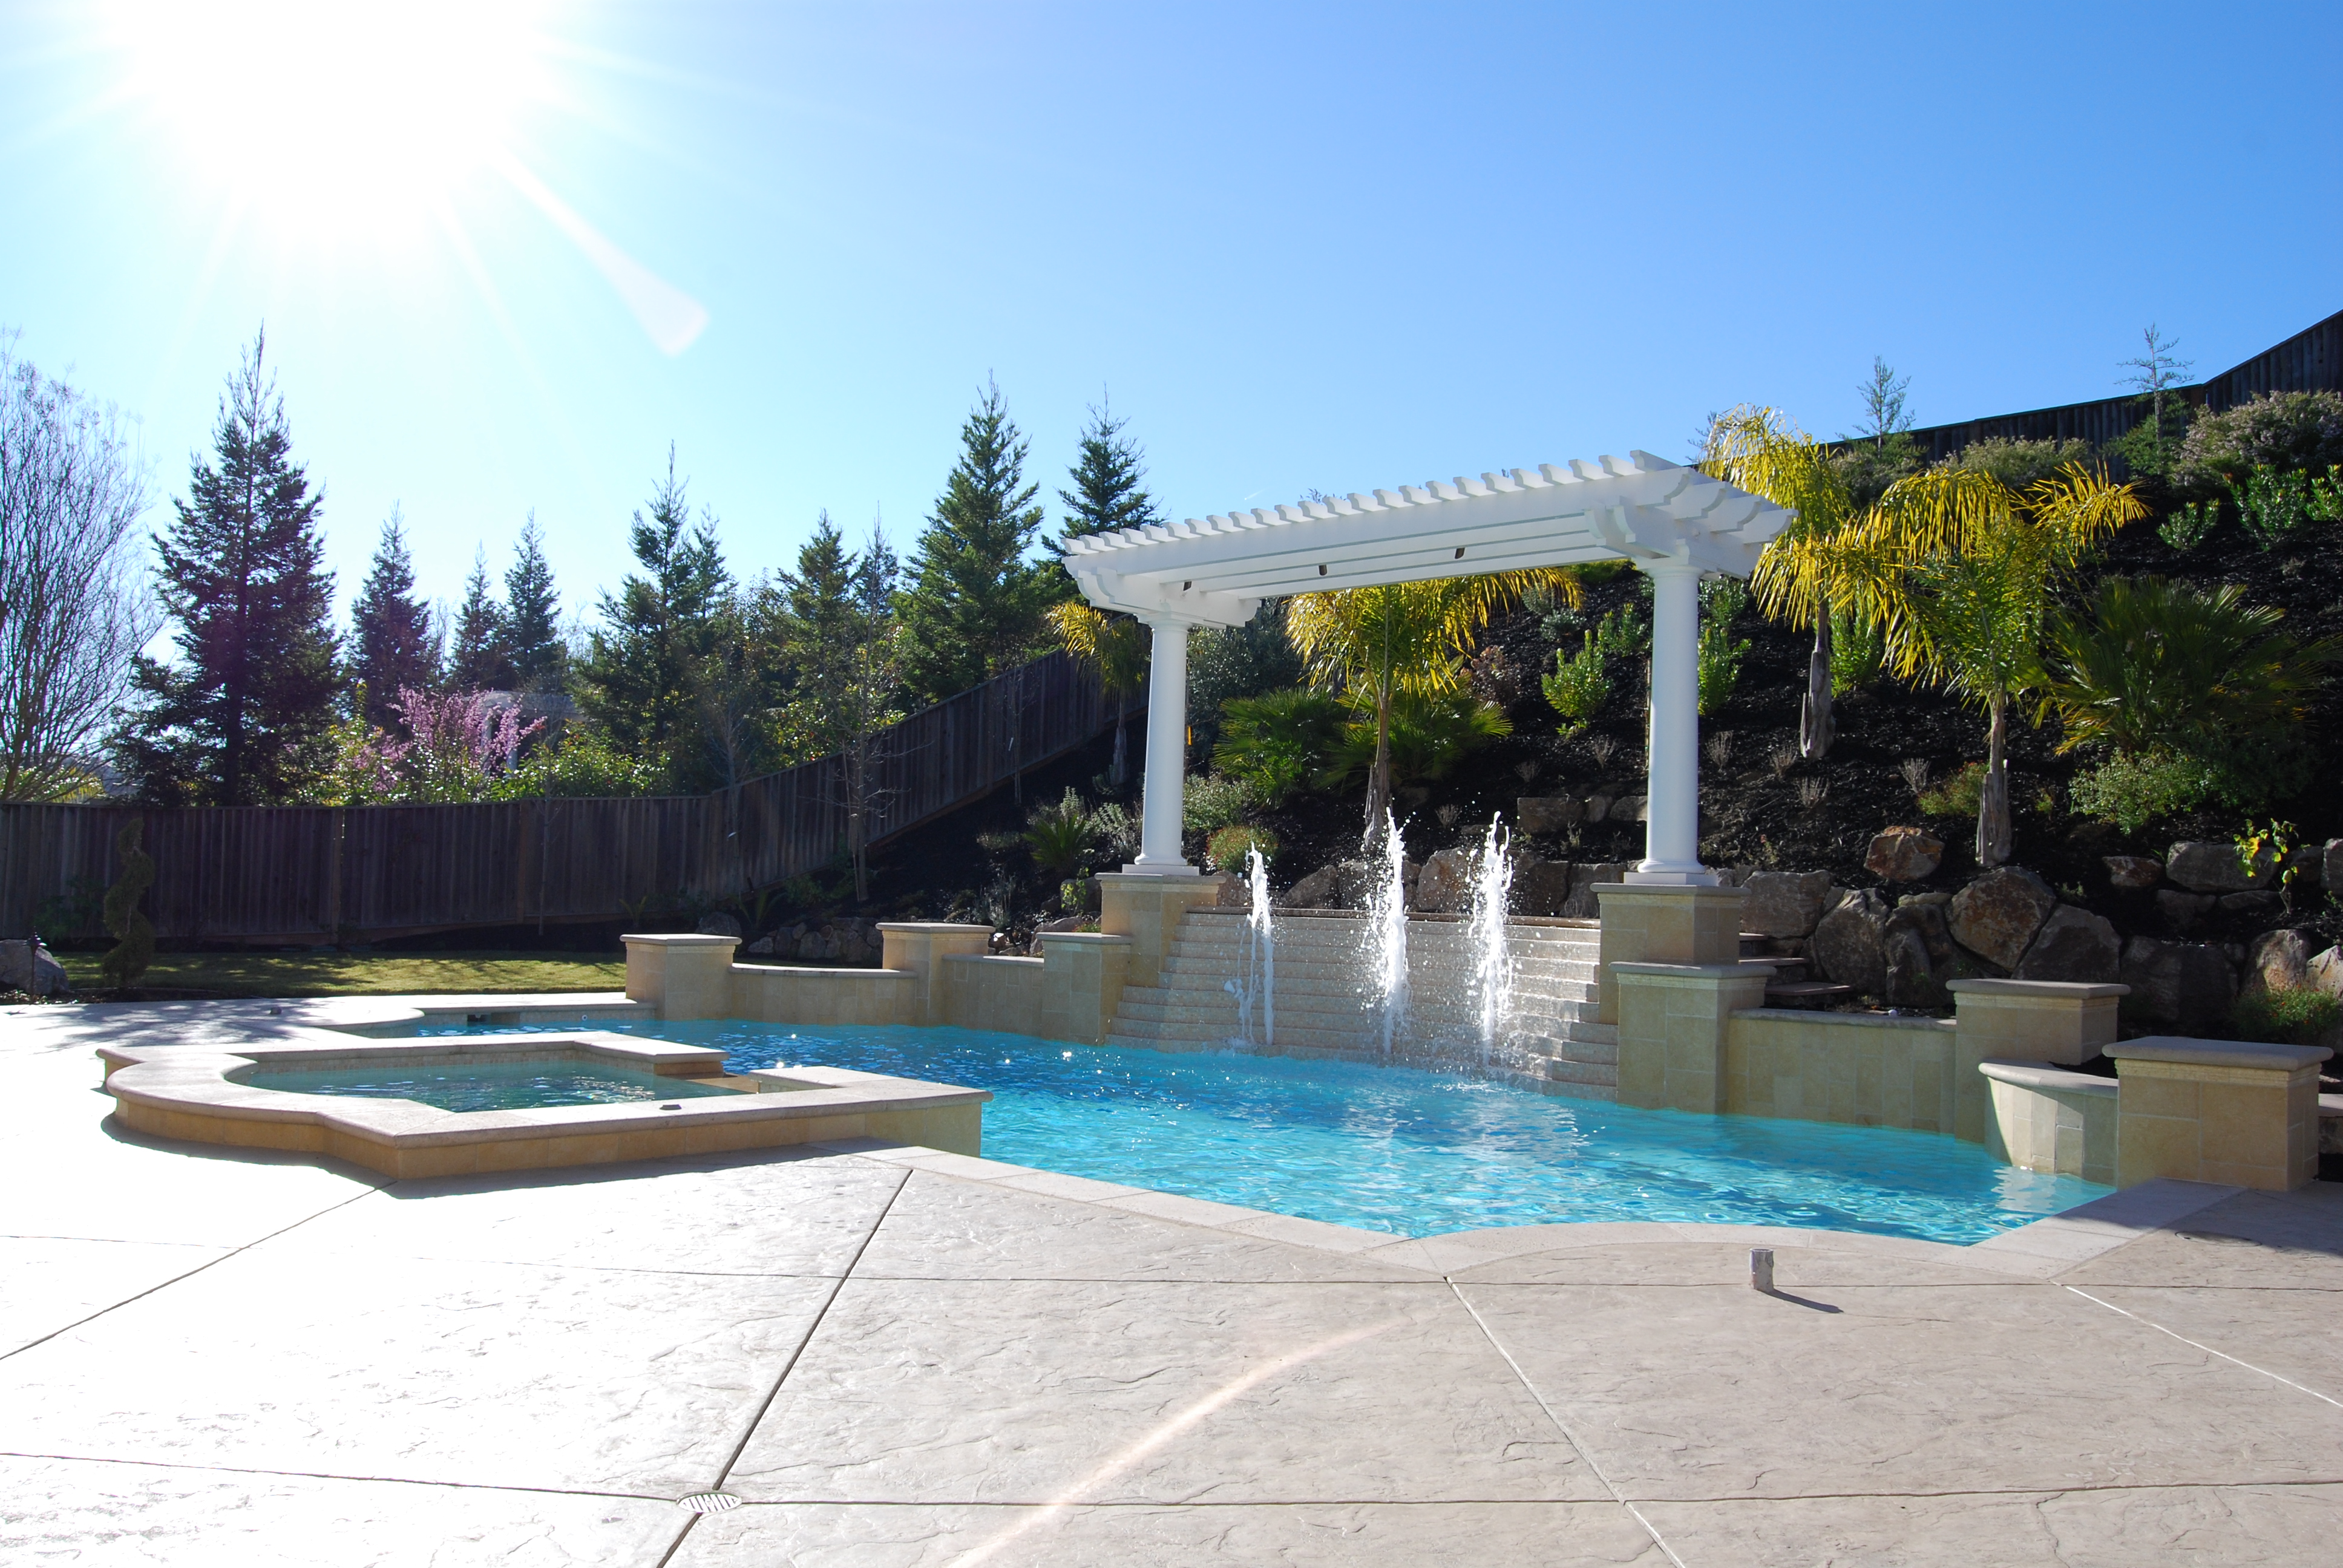 Quality pool design and construction hawkins pools for Quality pool design